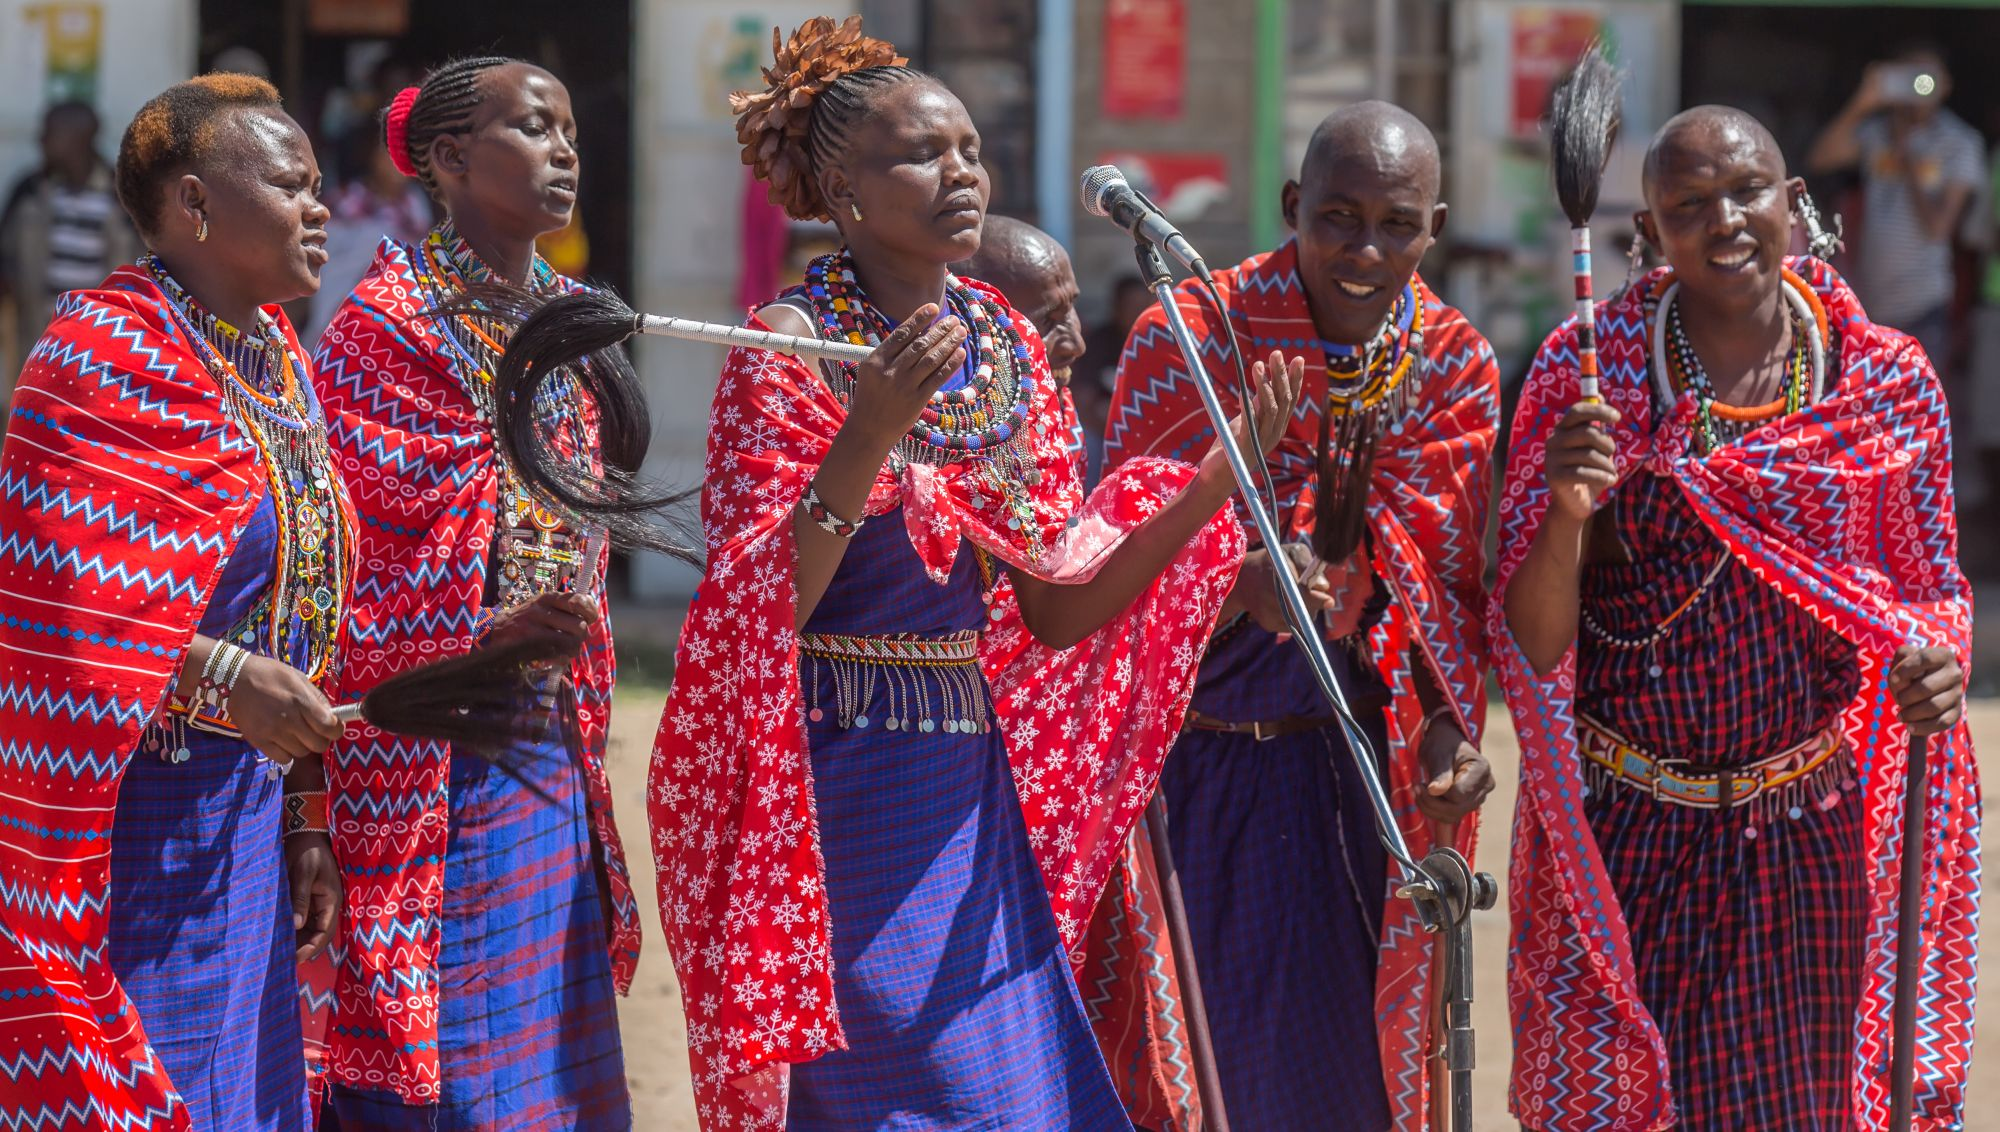 Maasai women singing as part the show (Paul Goldstein/PA)